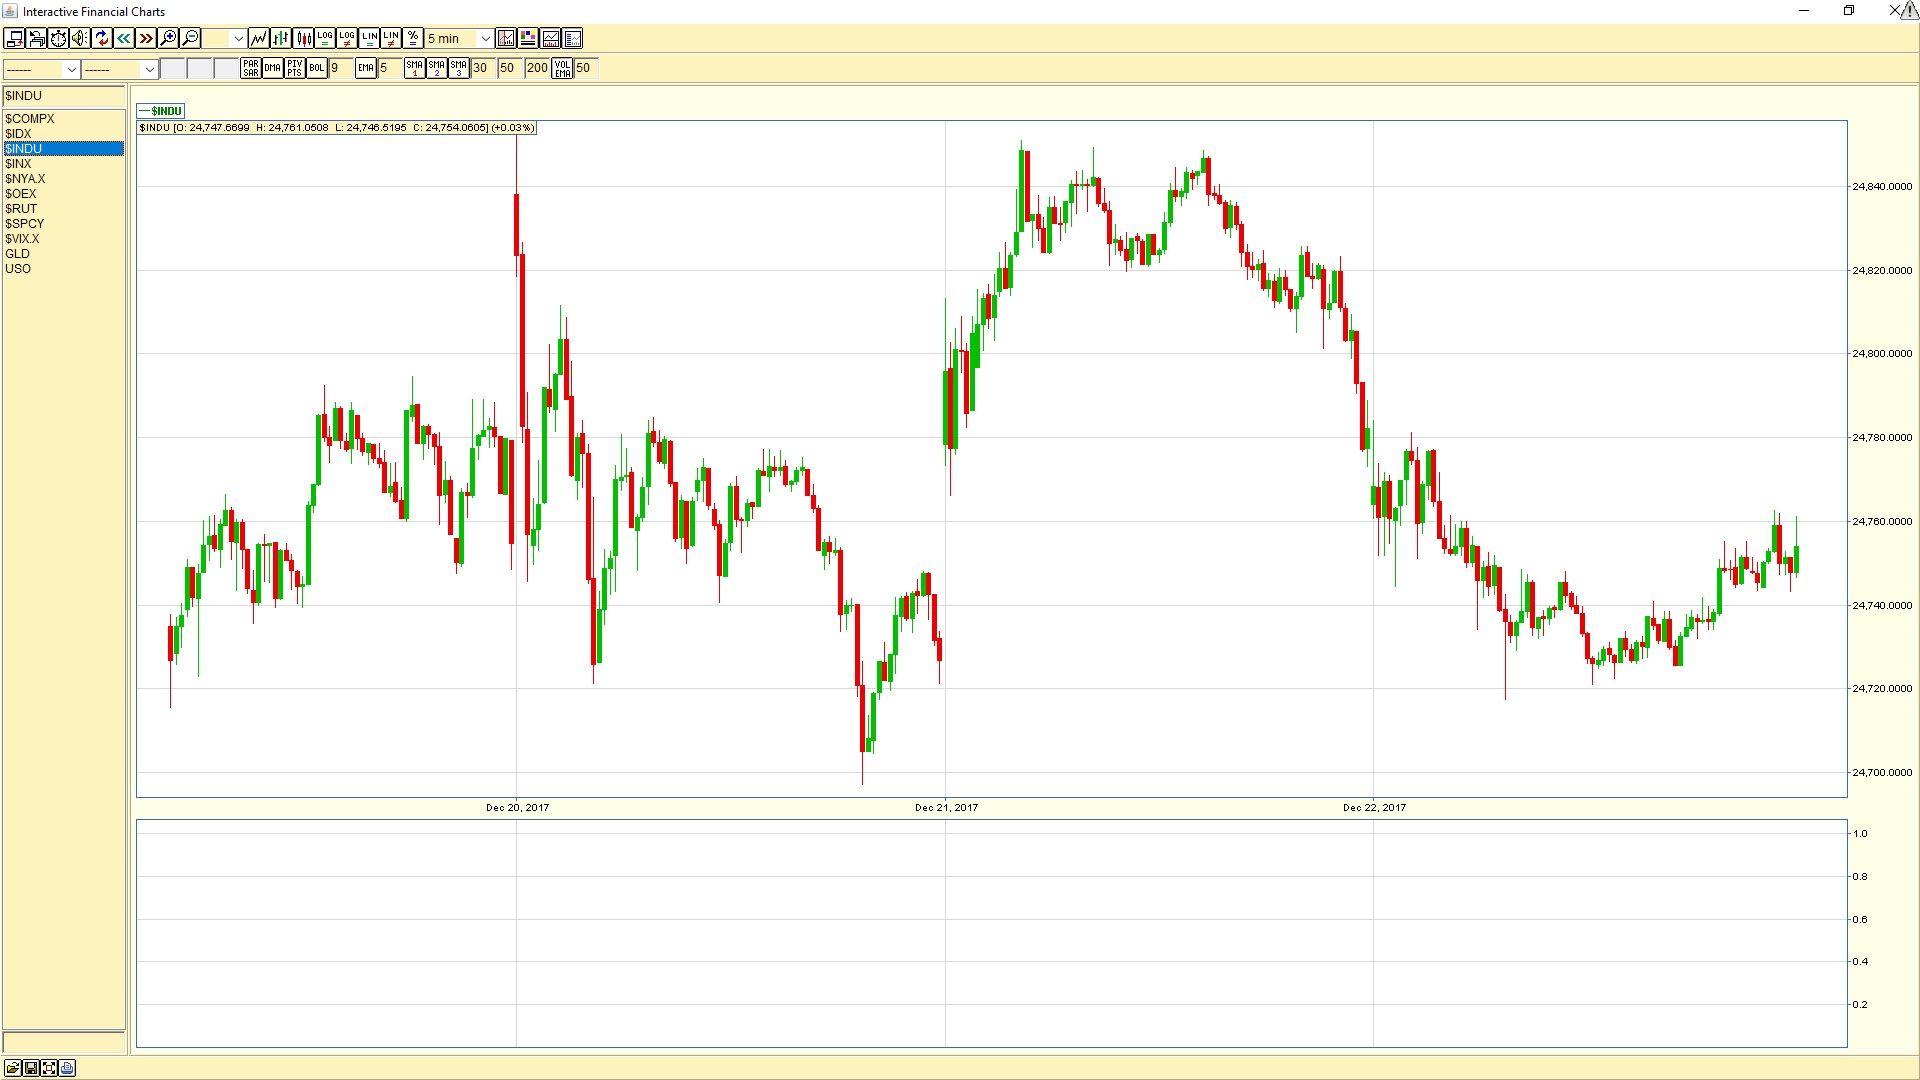 Dow Jones Industrial Average 5 min